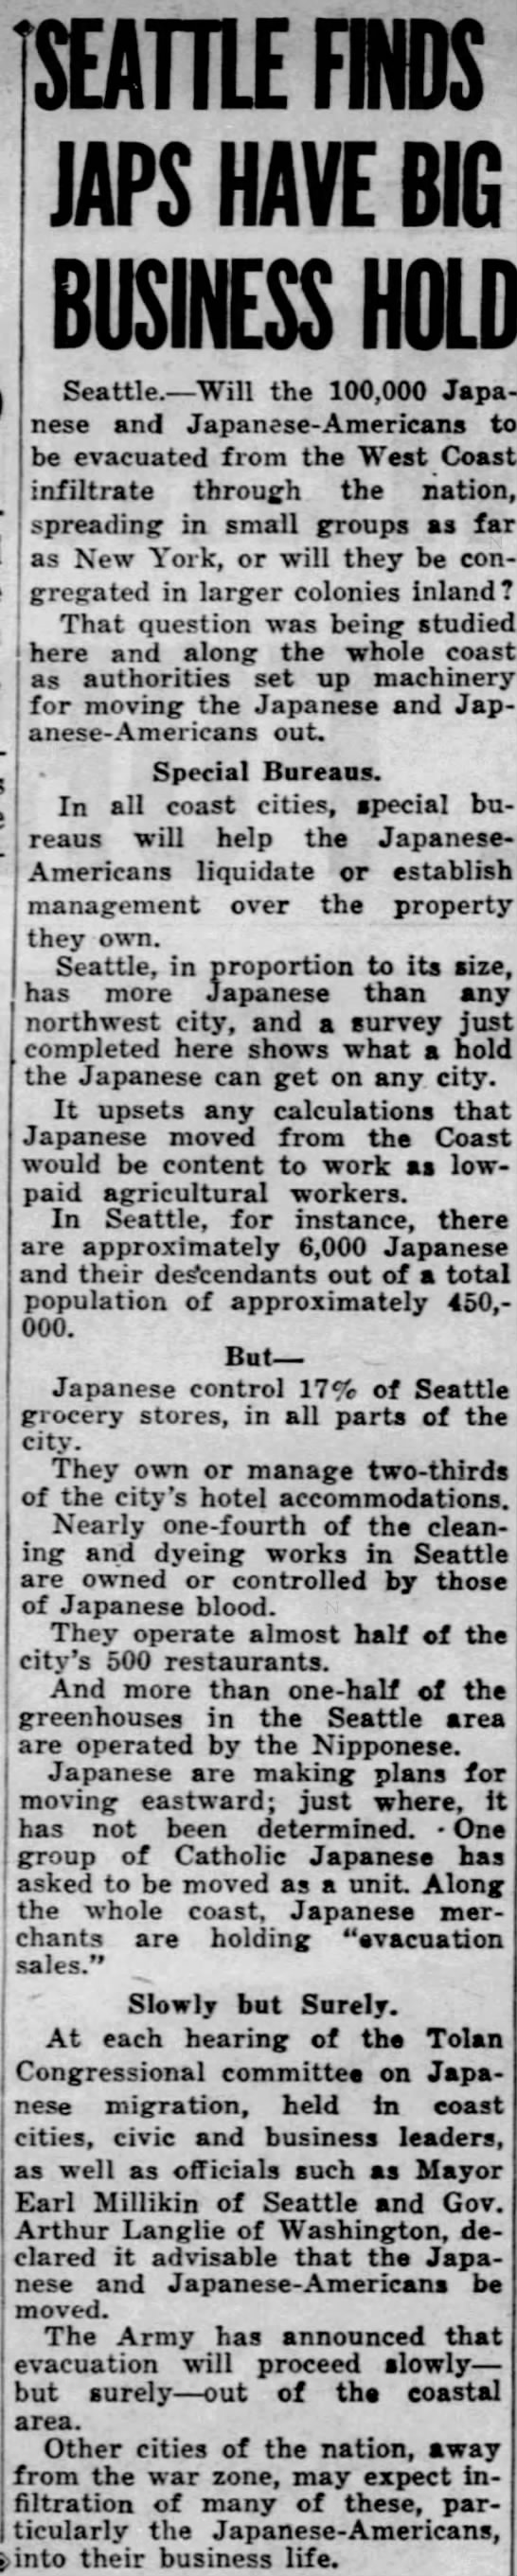 Japanese Americans evacuated from Seattle own large portion of the businesses in the city -